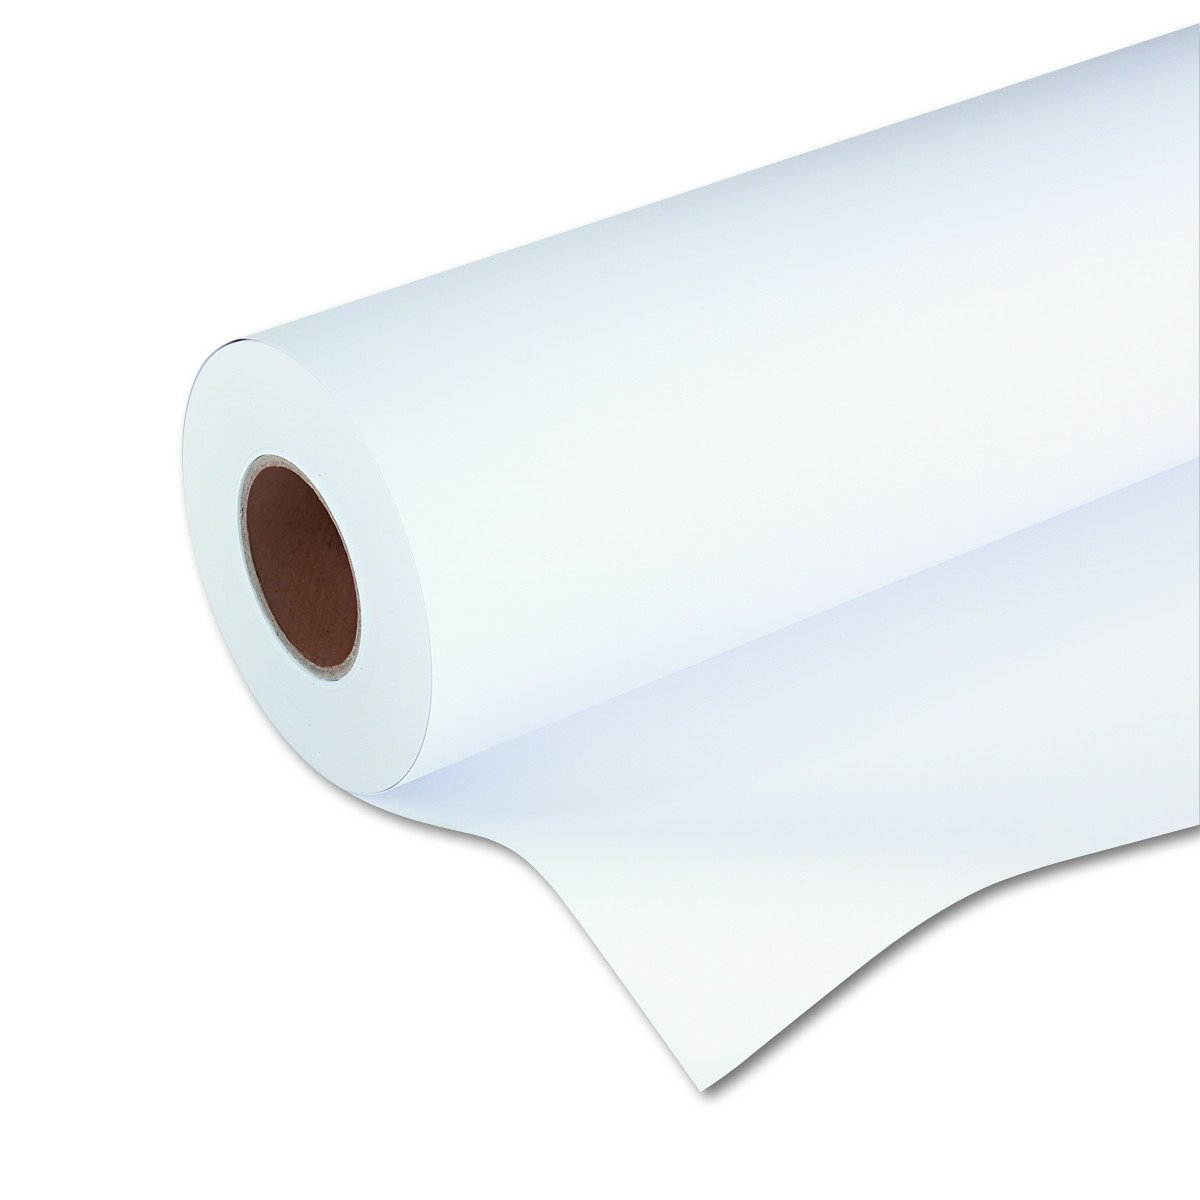 HP C6567B Designjet Inkjet Large Format Paper, 4.9 mil, 42'' x 150 ft, White by HP